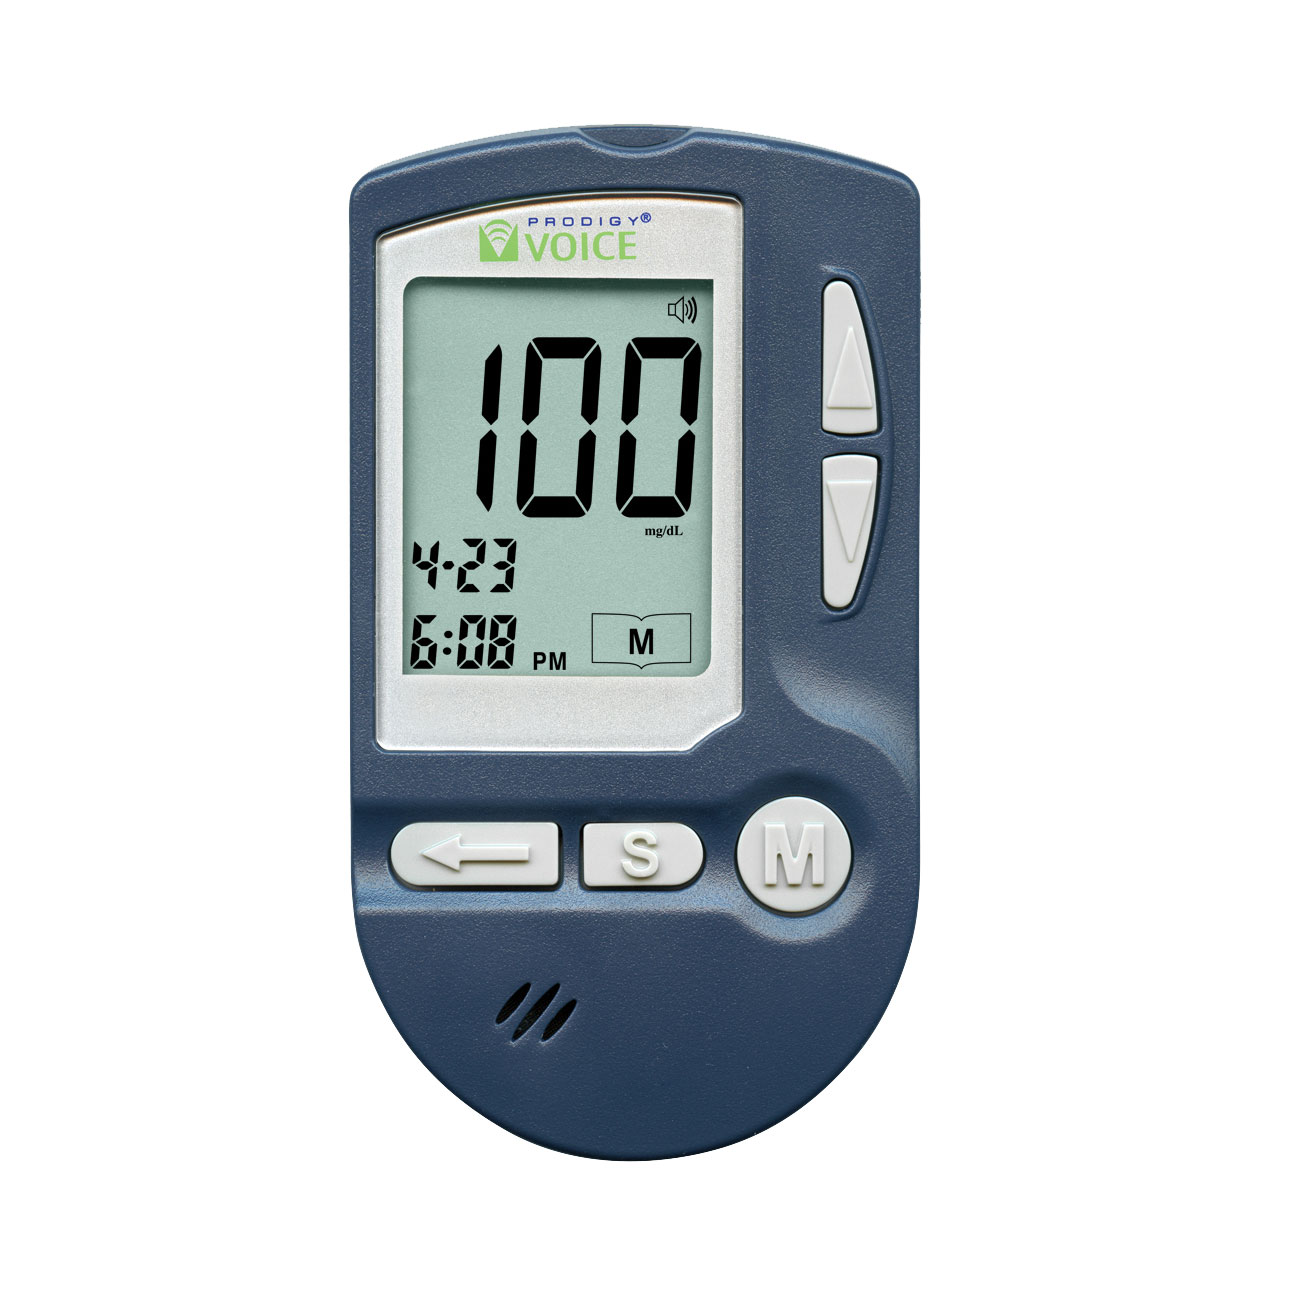 PRODIGY Voice Blood Glucose Monitoring System Price: $79.95